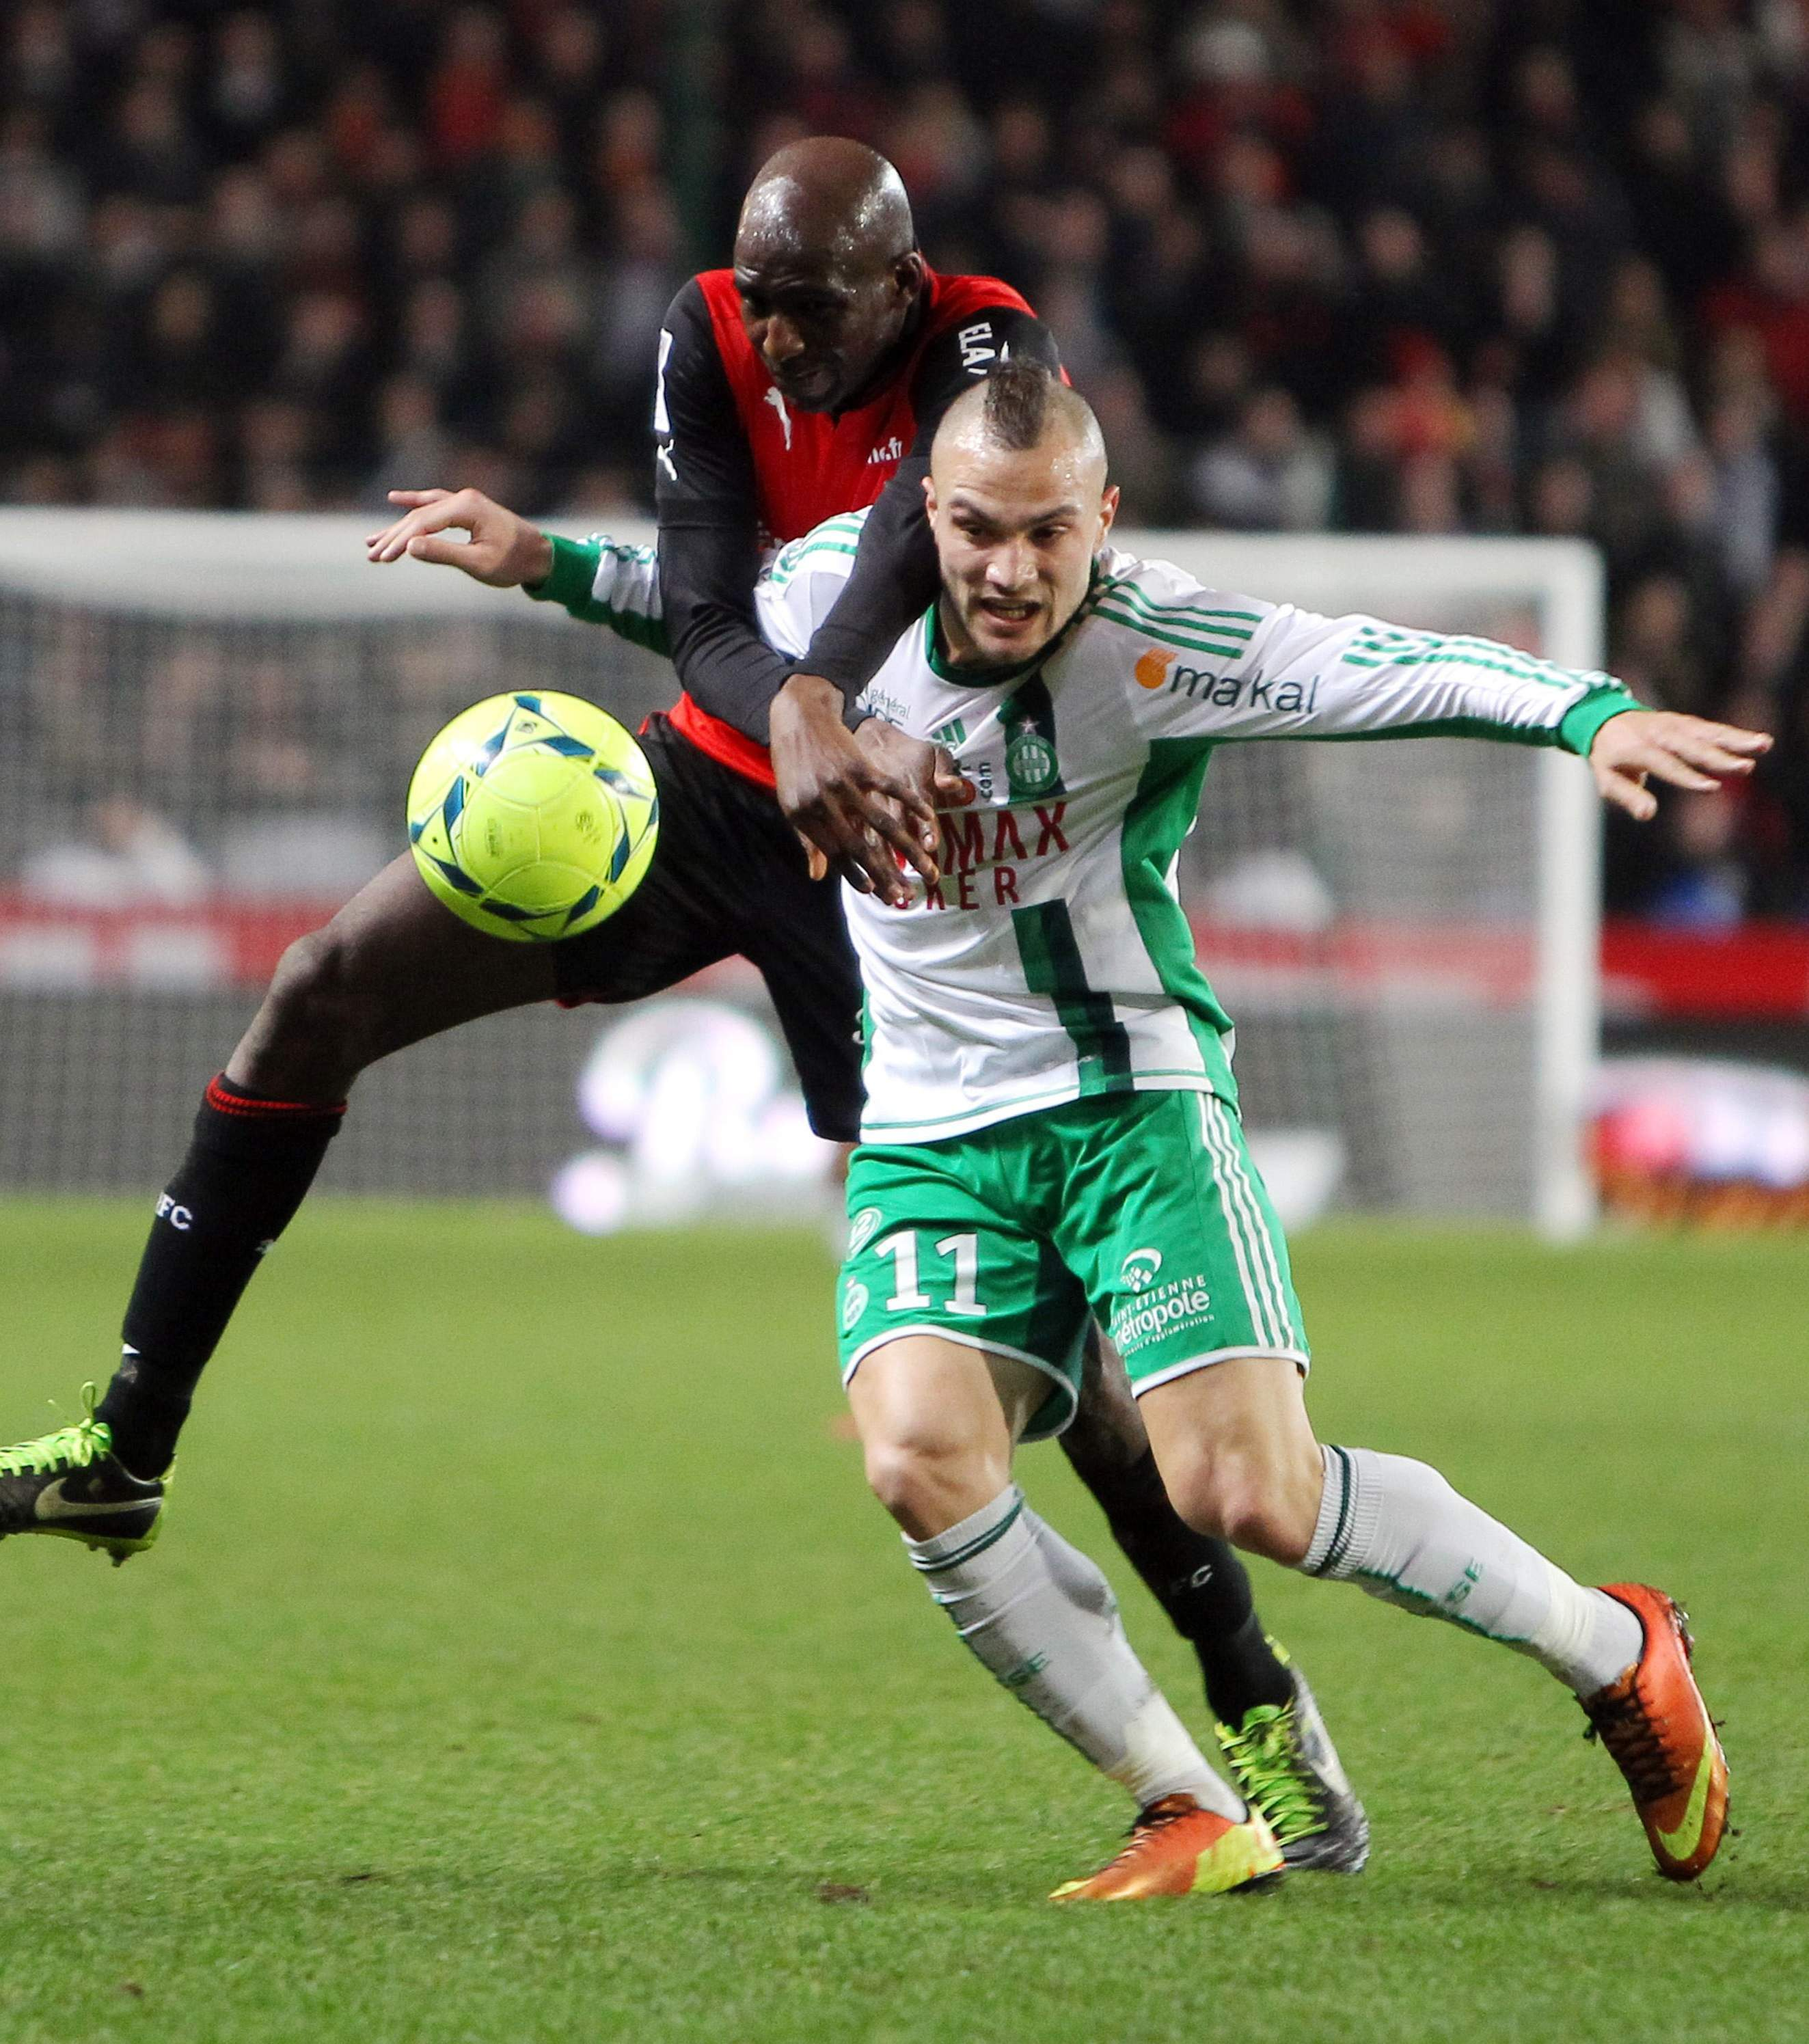 Finale coupe de la ligue 2013 les compositions probables de l 39 asse et du stade rennais - Coupe de la ligue 2013 14 ...